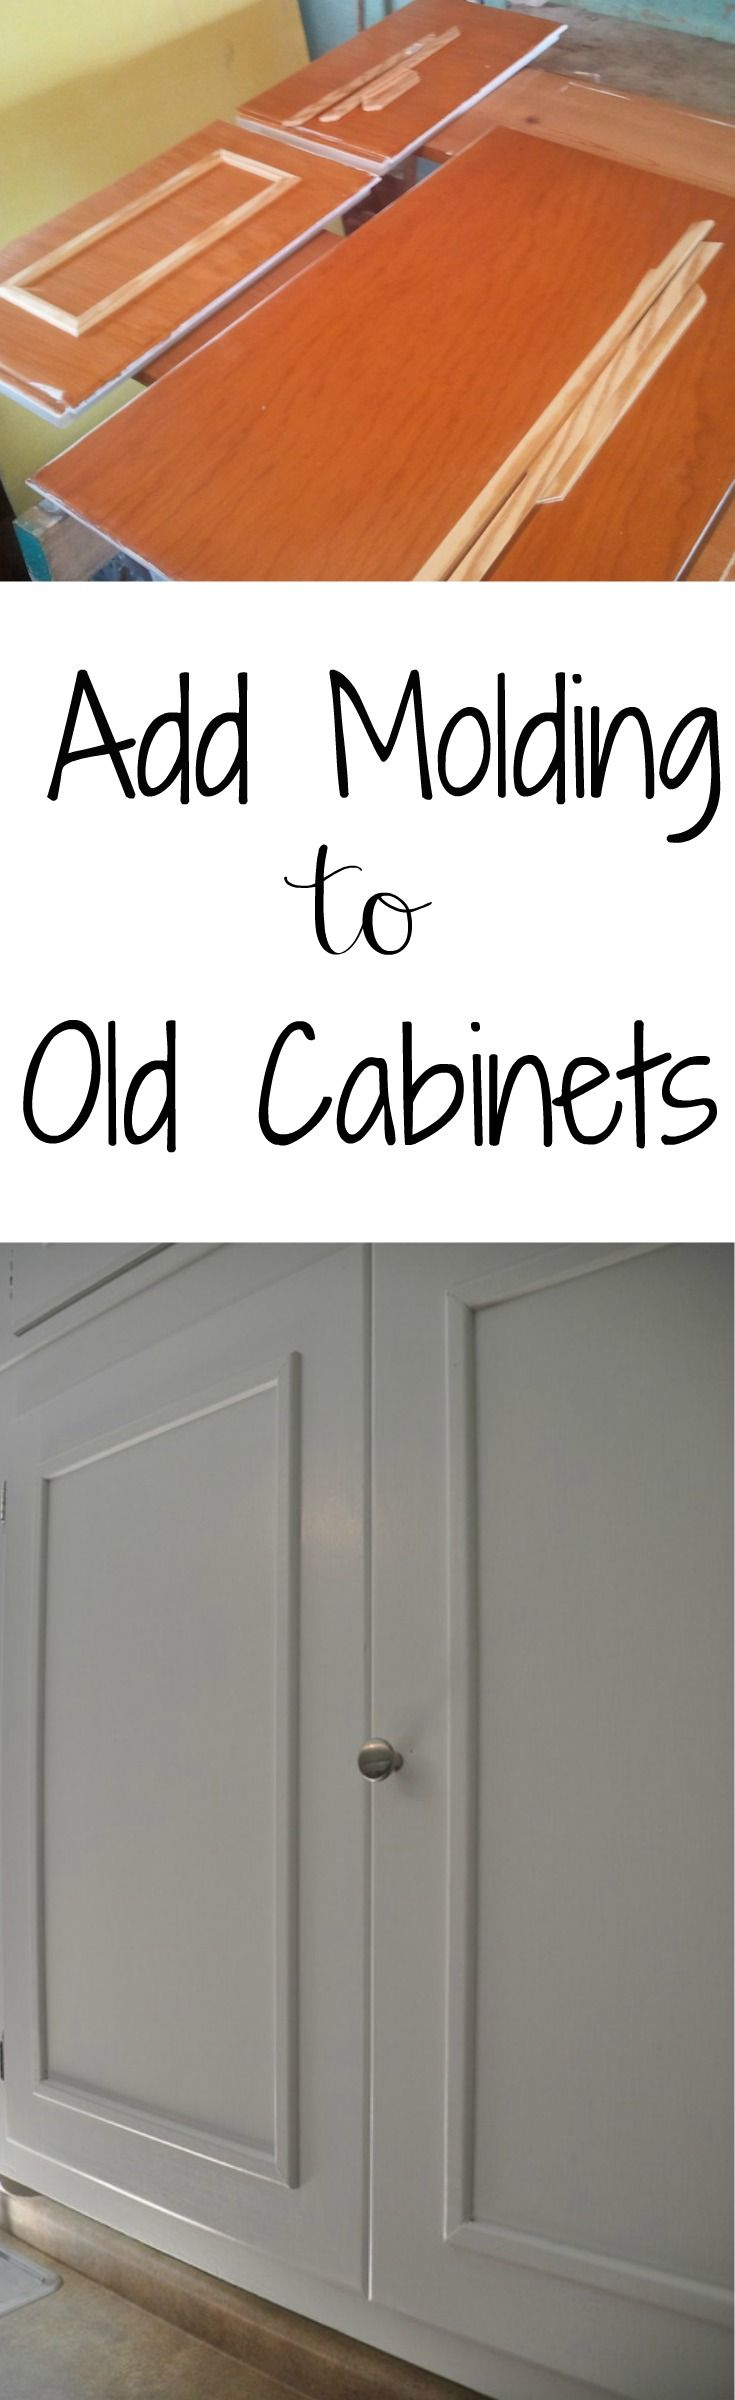 How To Add Cabinet Molding. Update Kitchen CabinetsOld ...